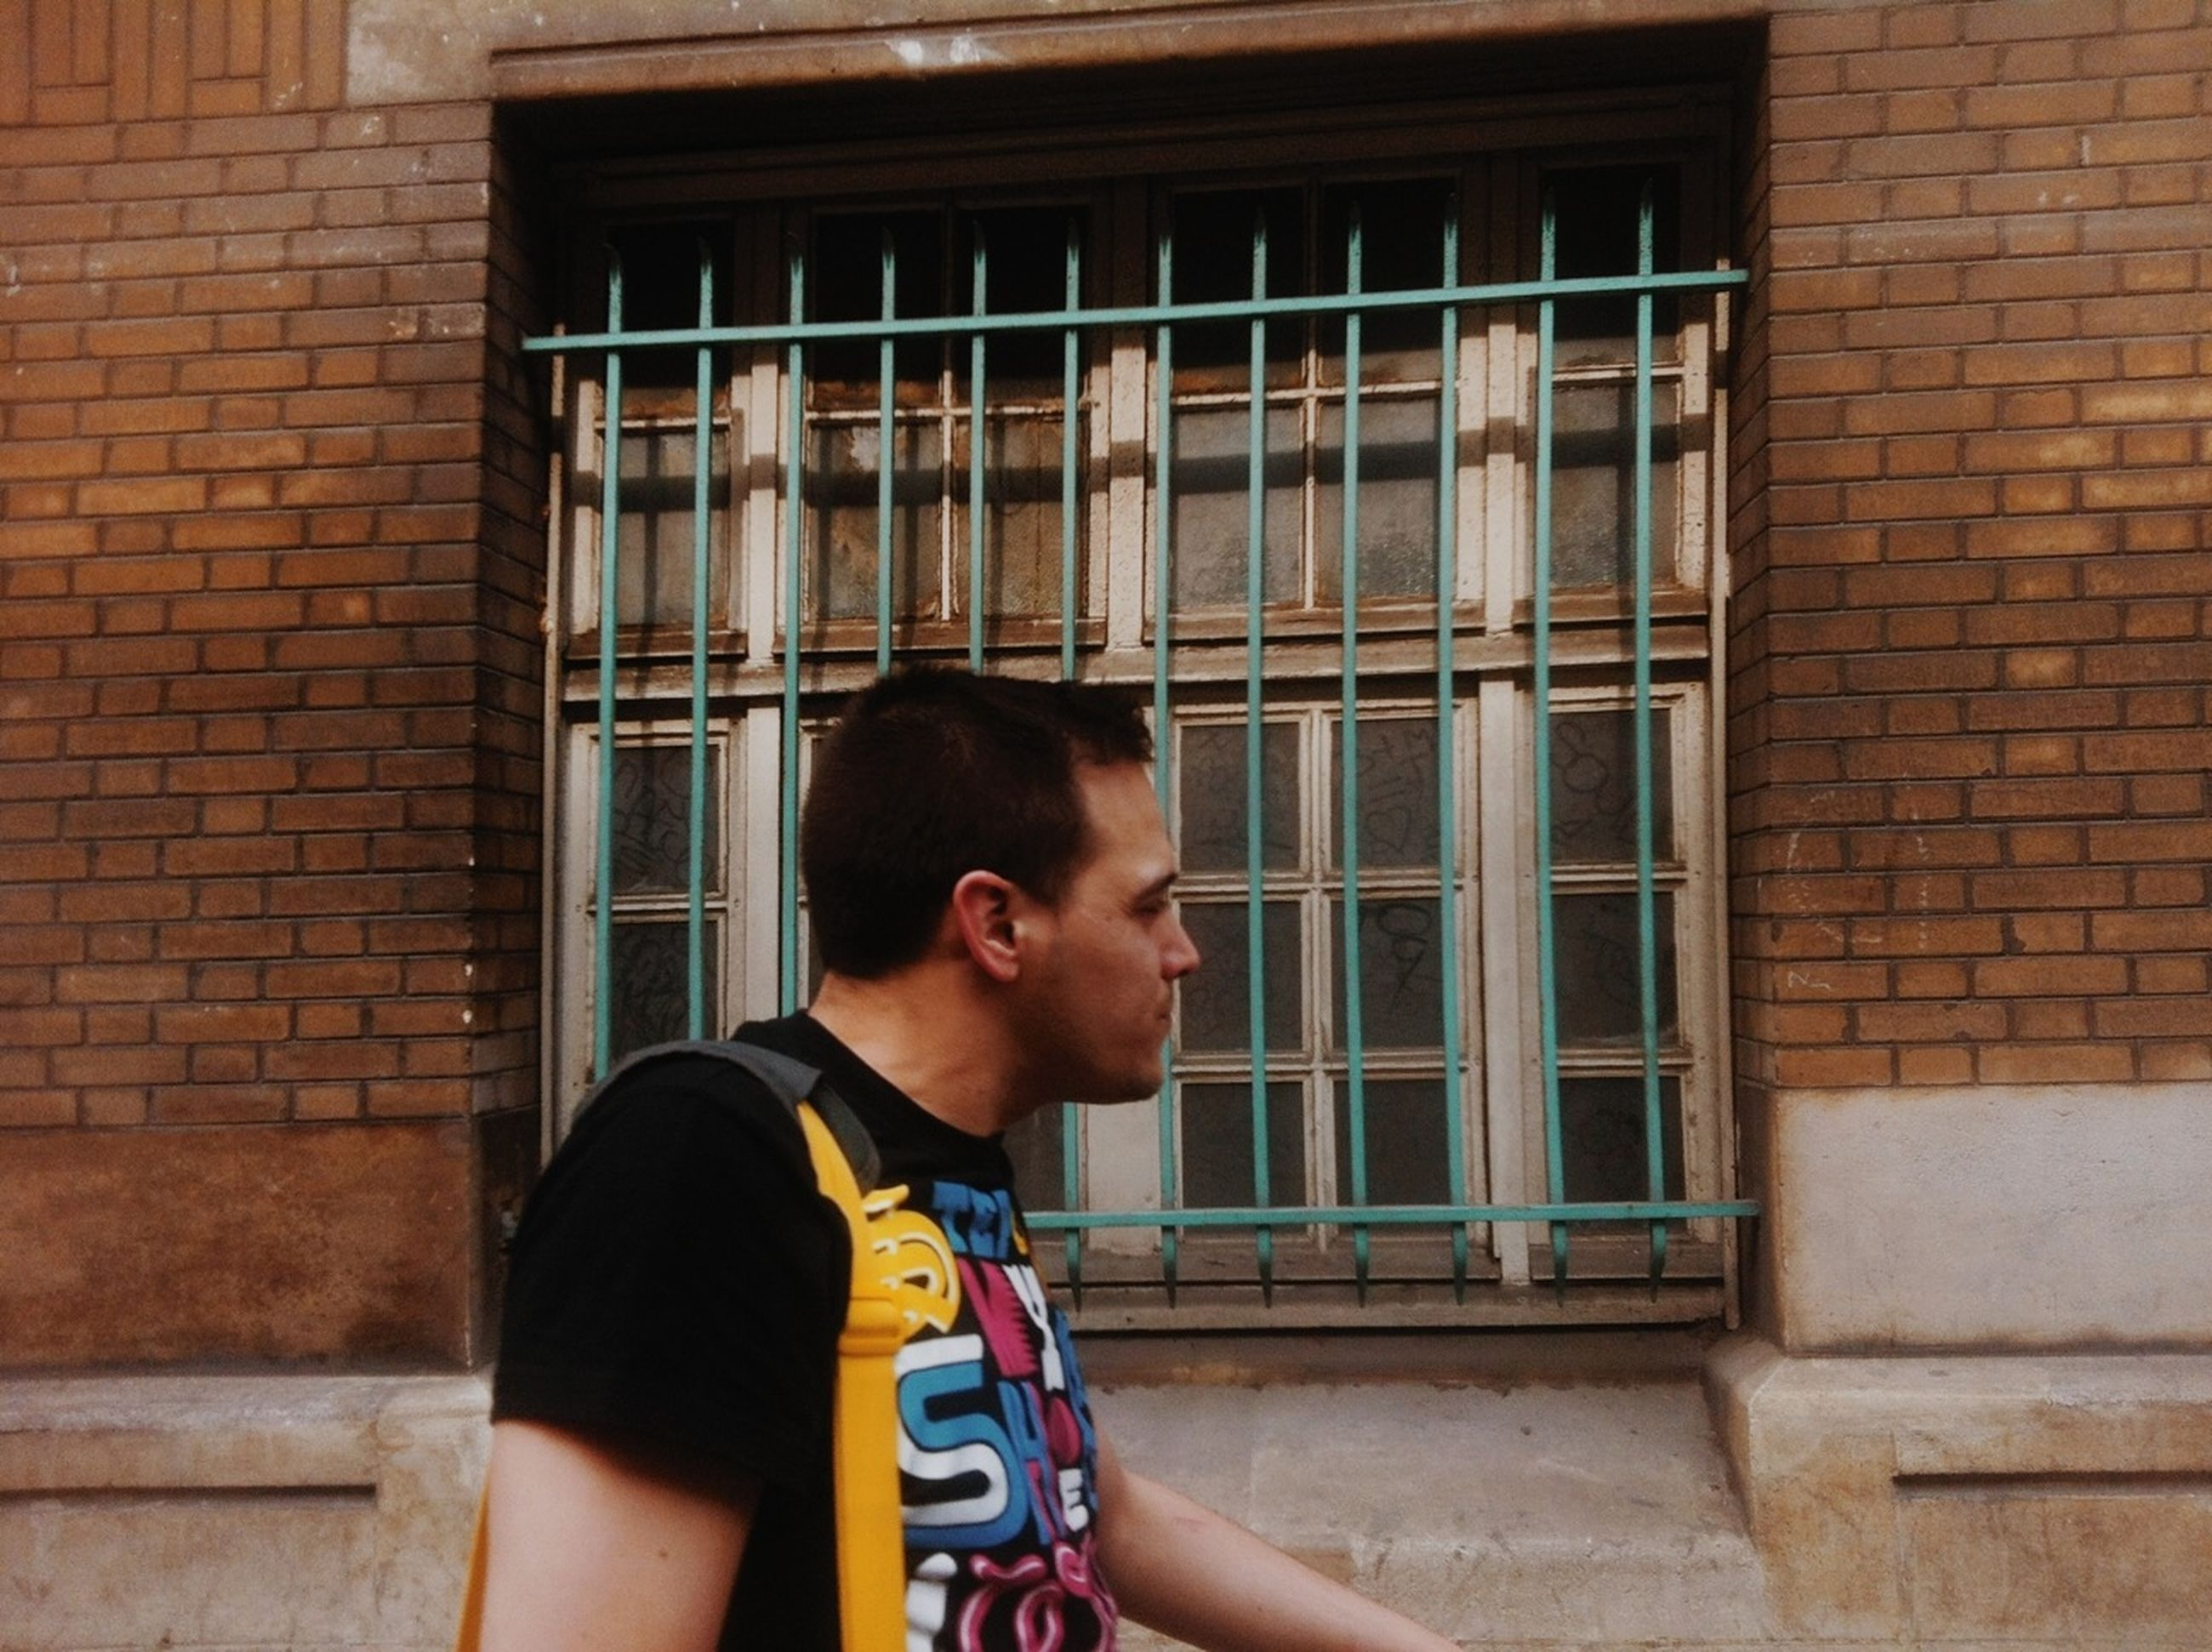 building exterior, architecture, built structure, person, young adult, lifestyles, front view, leisure activity, portrait, window, looking at camera, casual clothing, brick wall, standing, young men, building, smiling